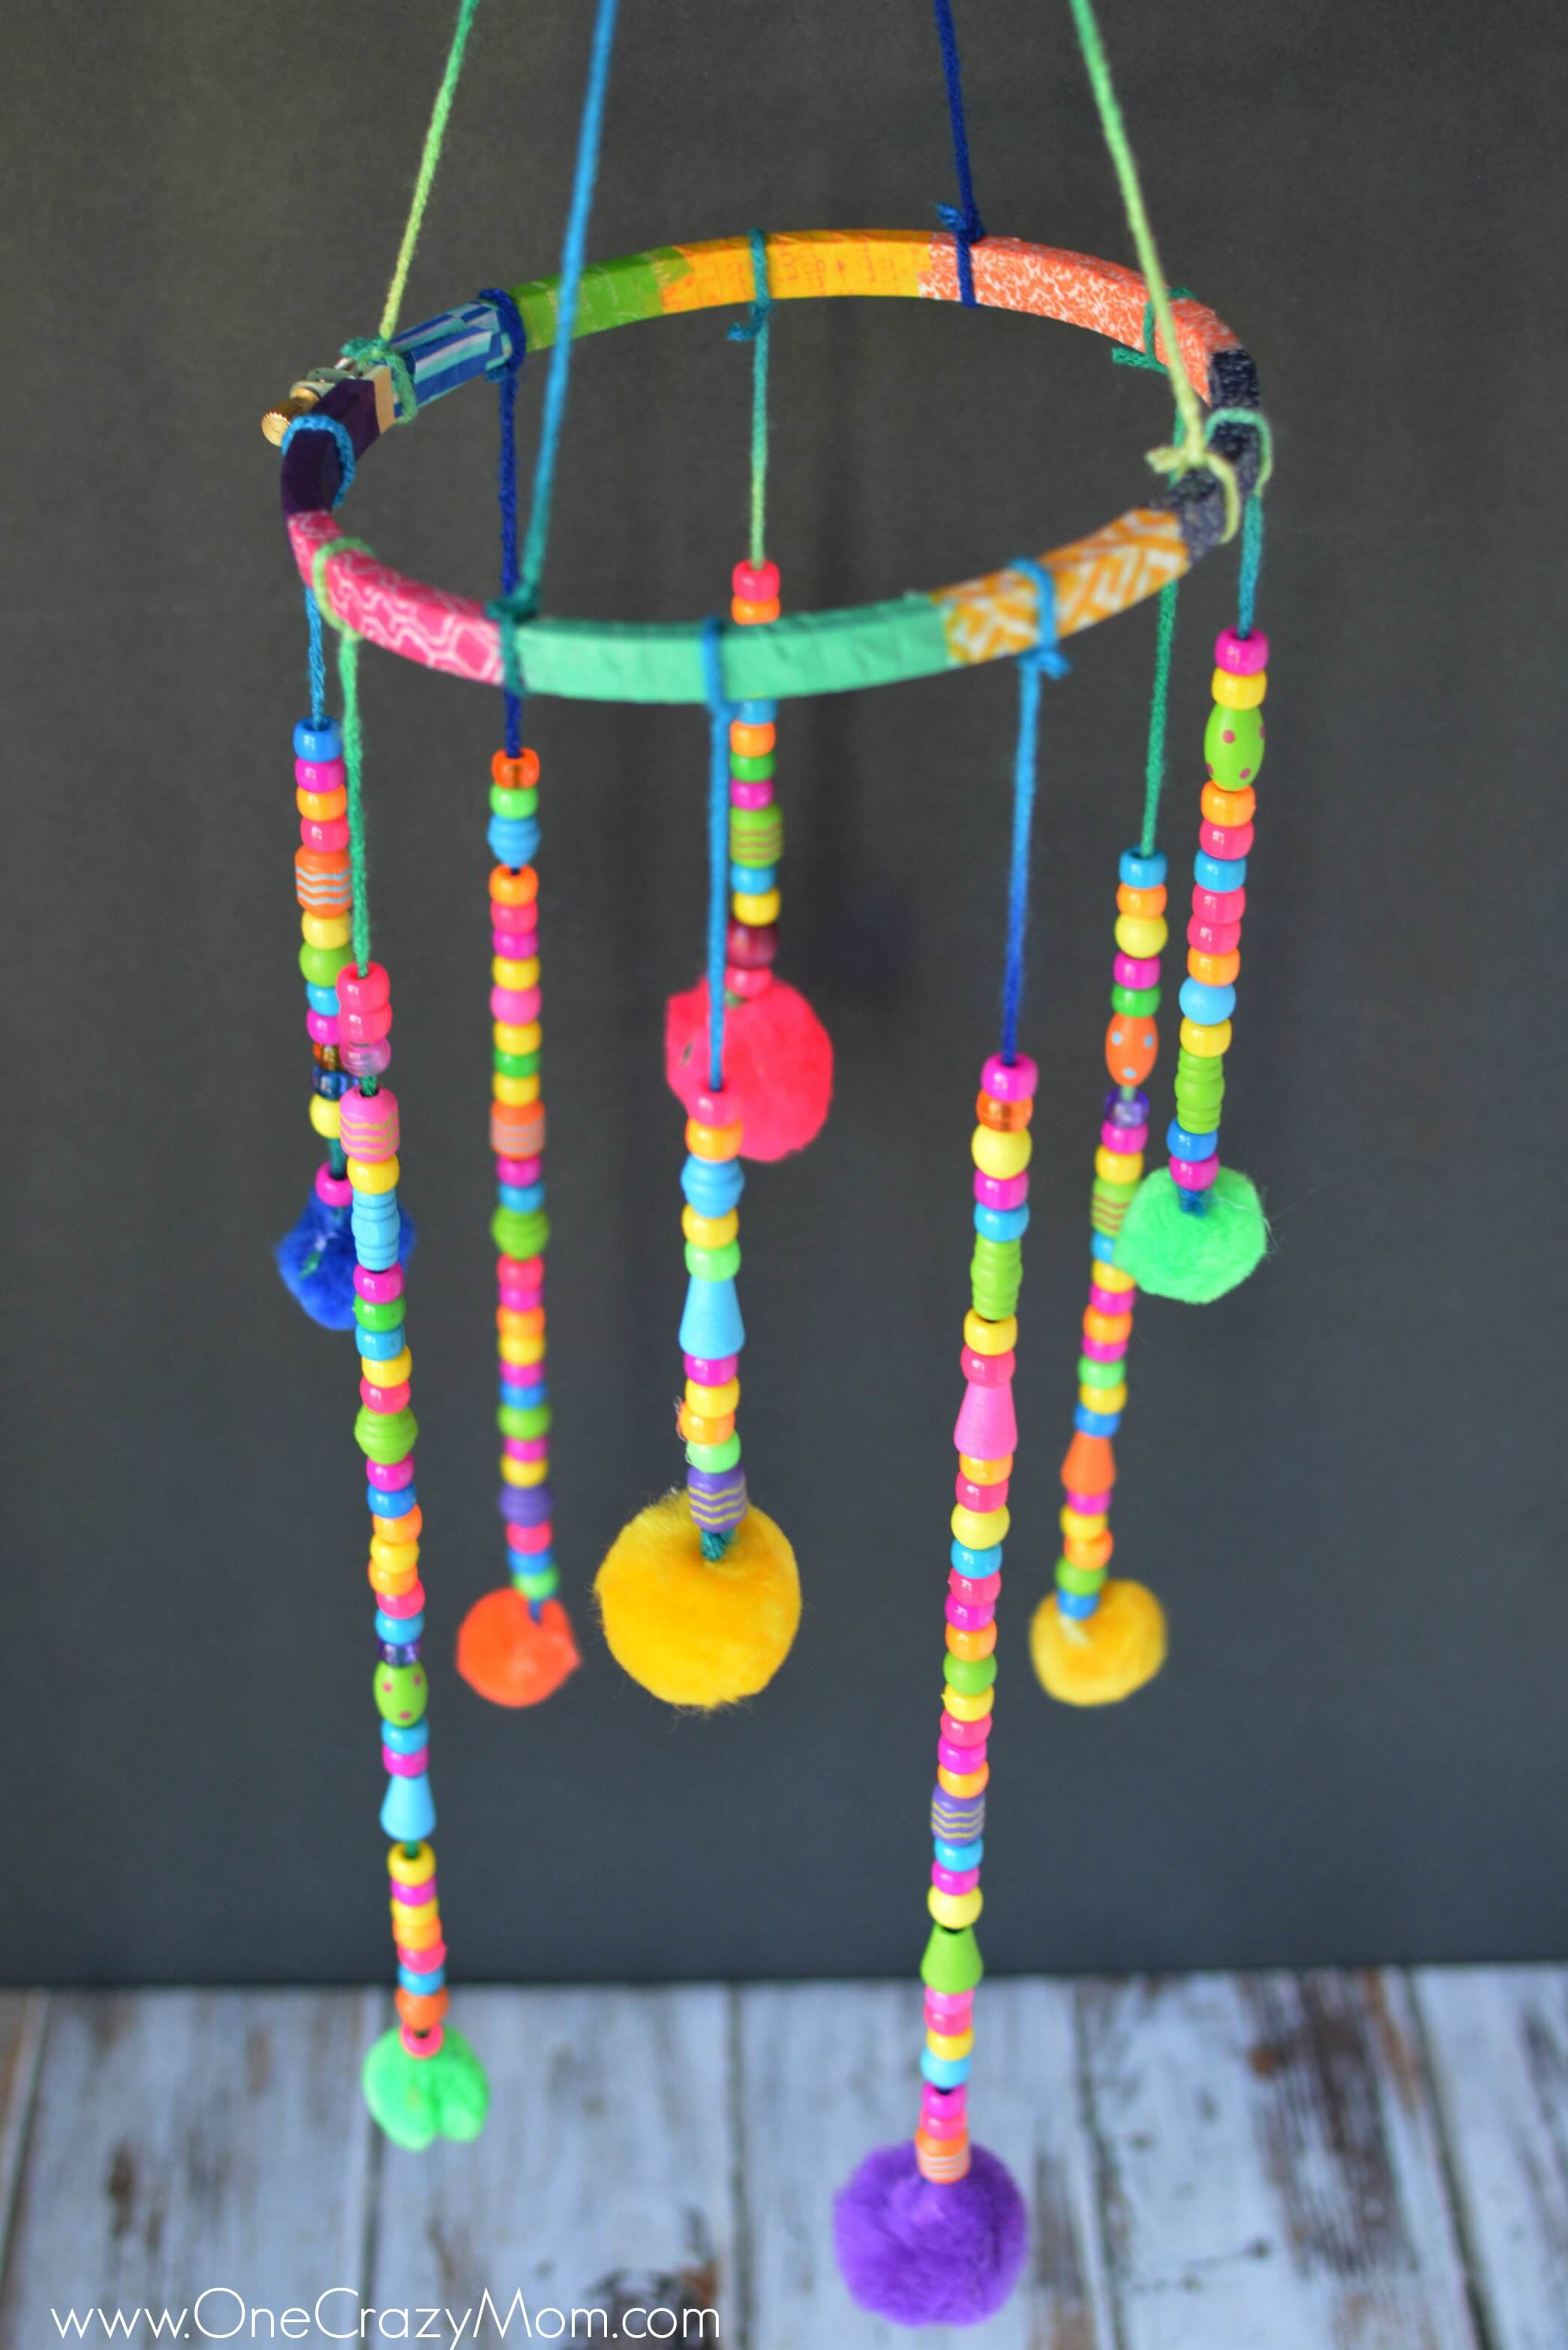 Images How To Make Easy Wind Chimes Full Version Hd Quality